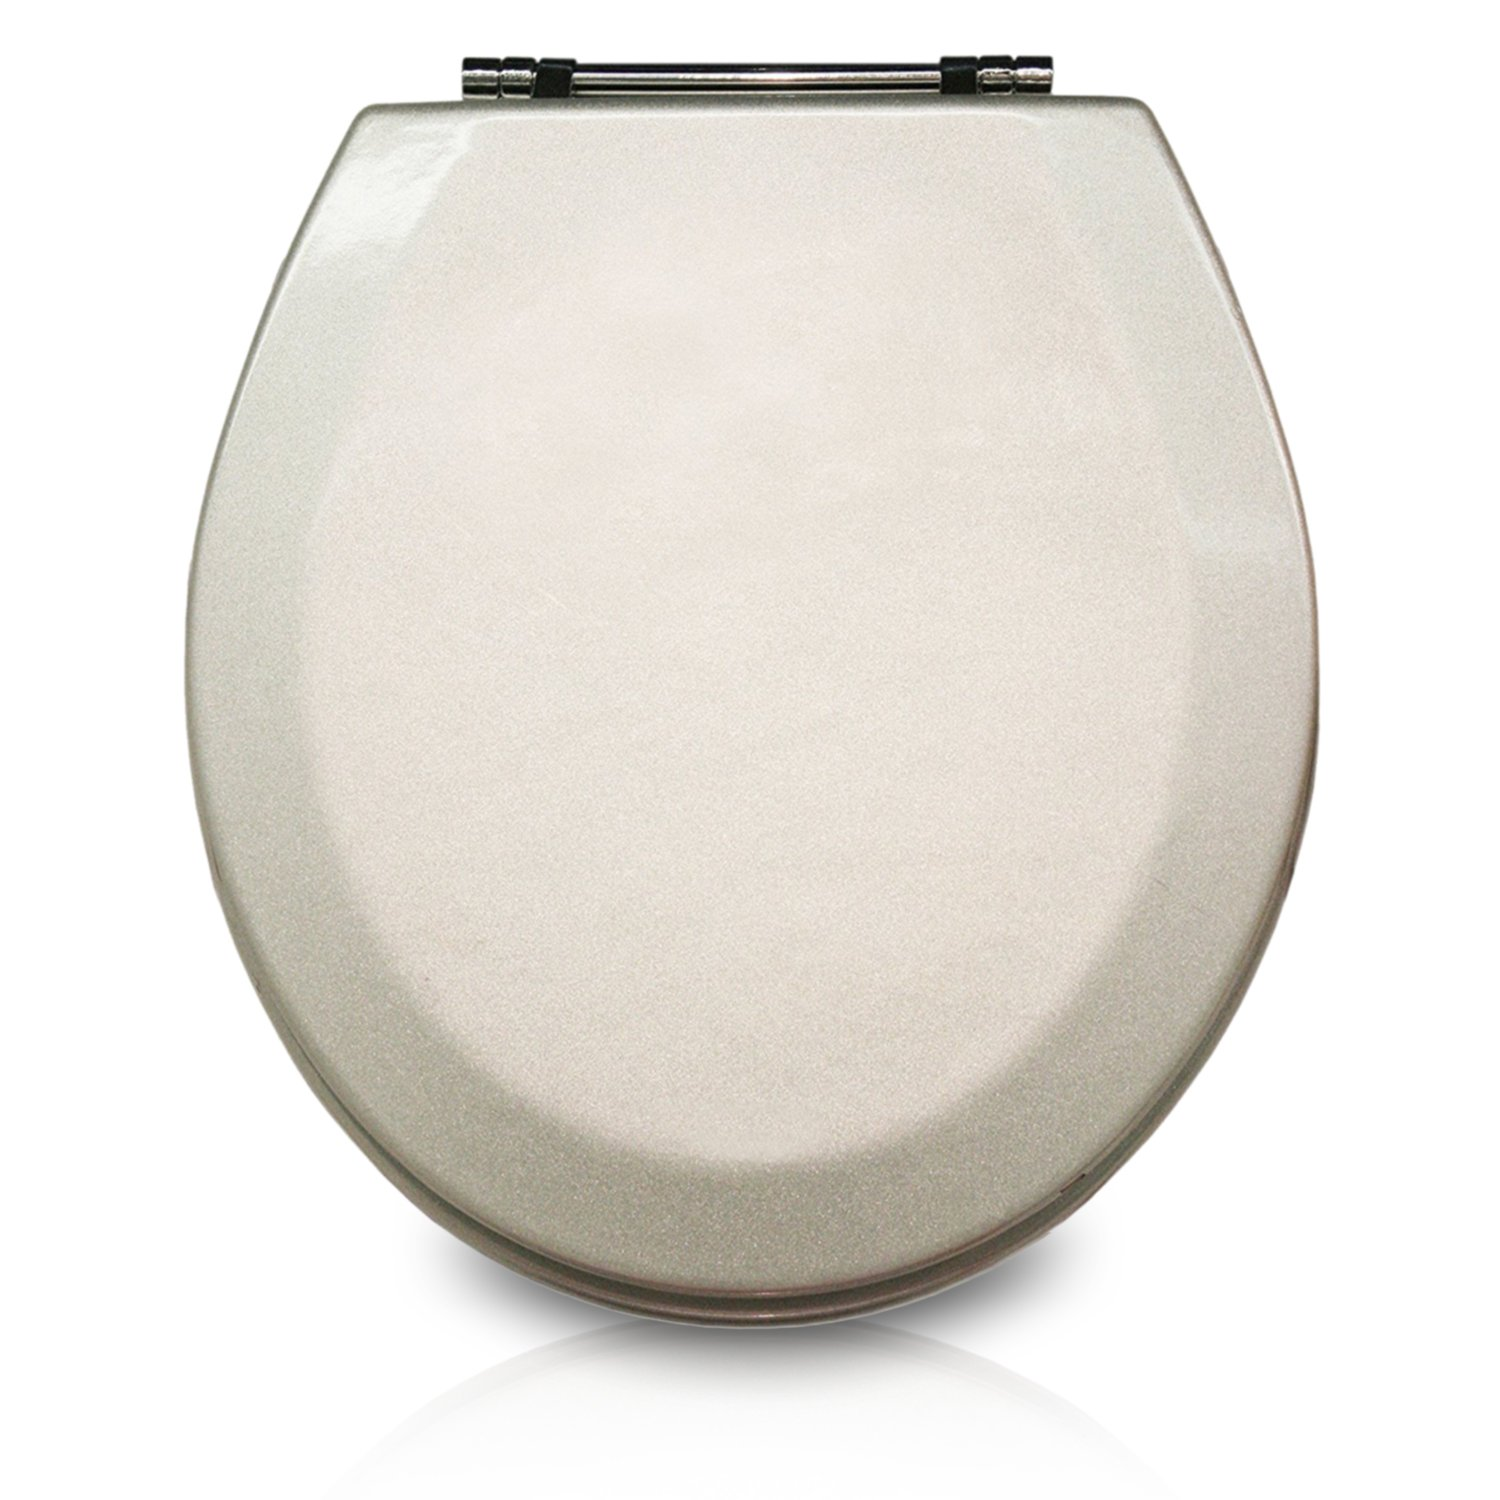 Trimmer Premium Molded Wood Toilet Seats With Multi-Coat Surface Finish - Water and Stain-resistant Finish with Chrome Hinges, Silver by Trimmer